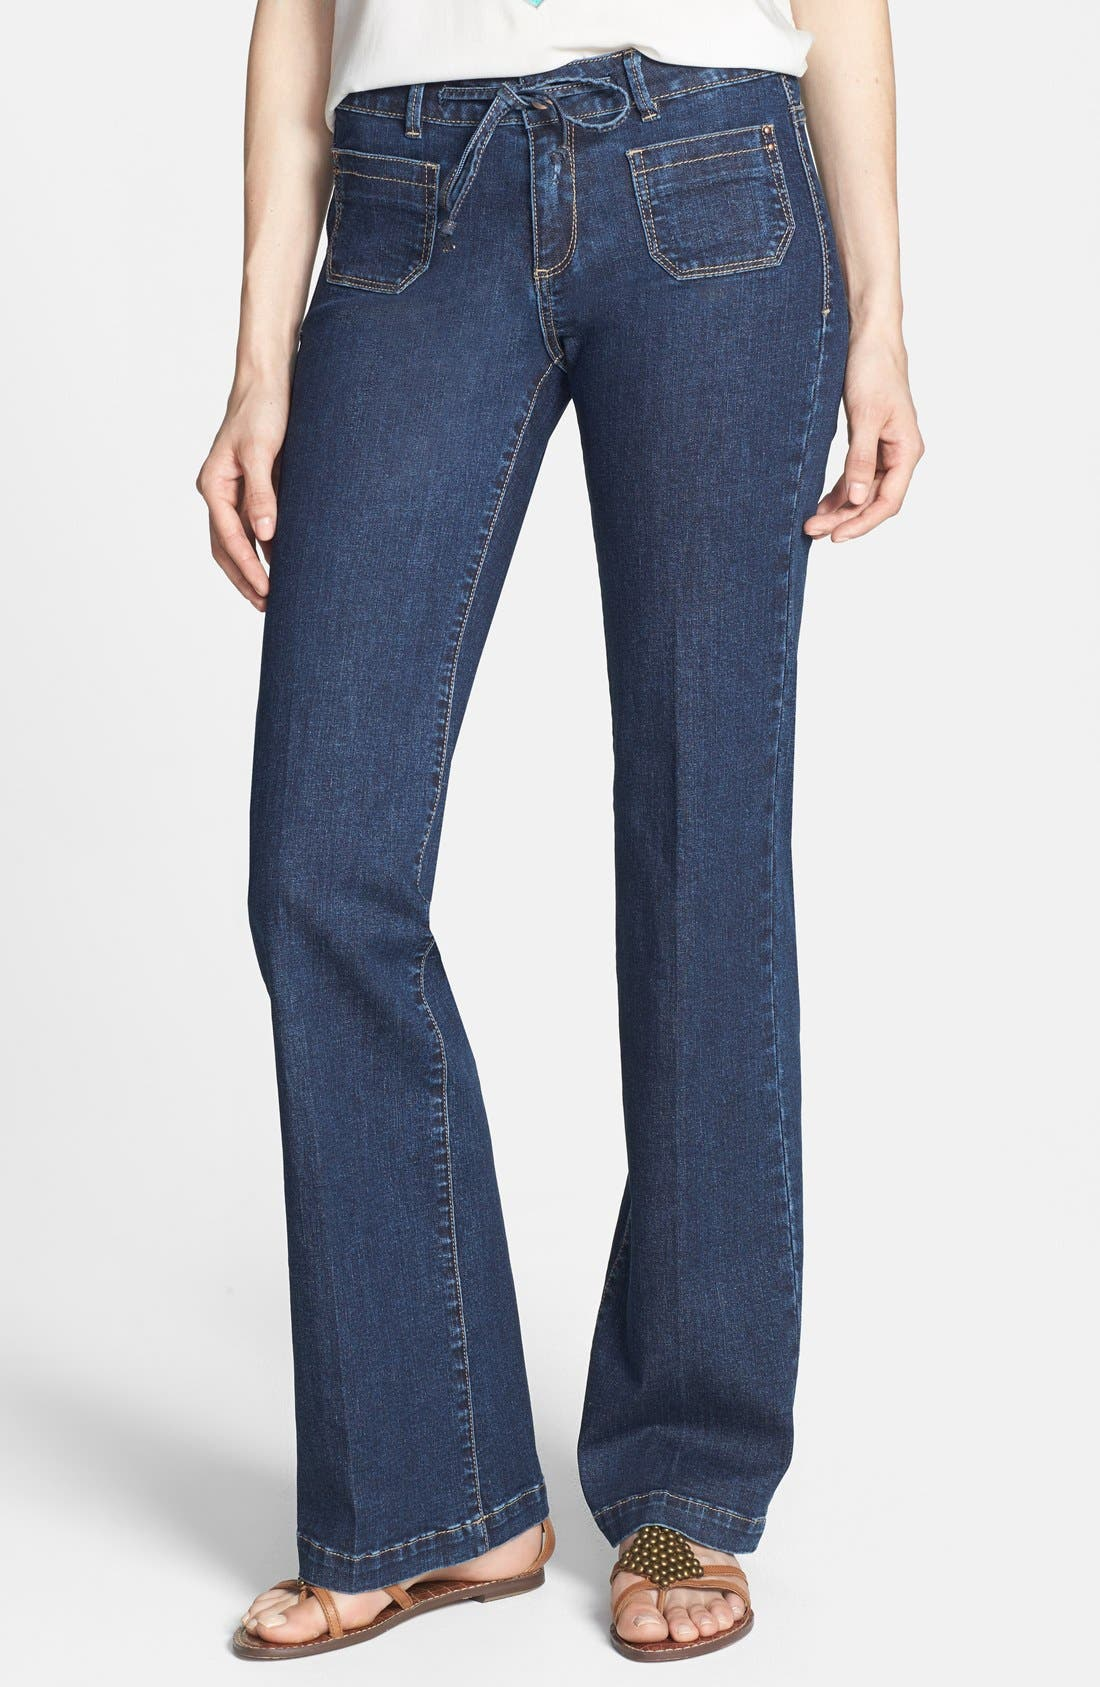 Main Image - HART Denim 'Pheona' Wide Leg Trouser Jeans (Carbon) (Juniors)